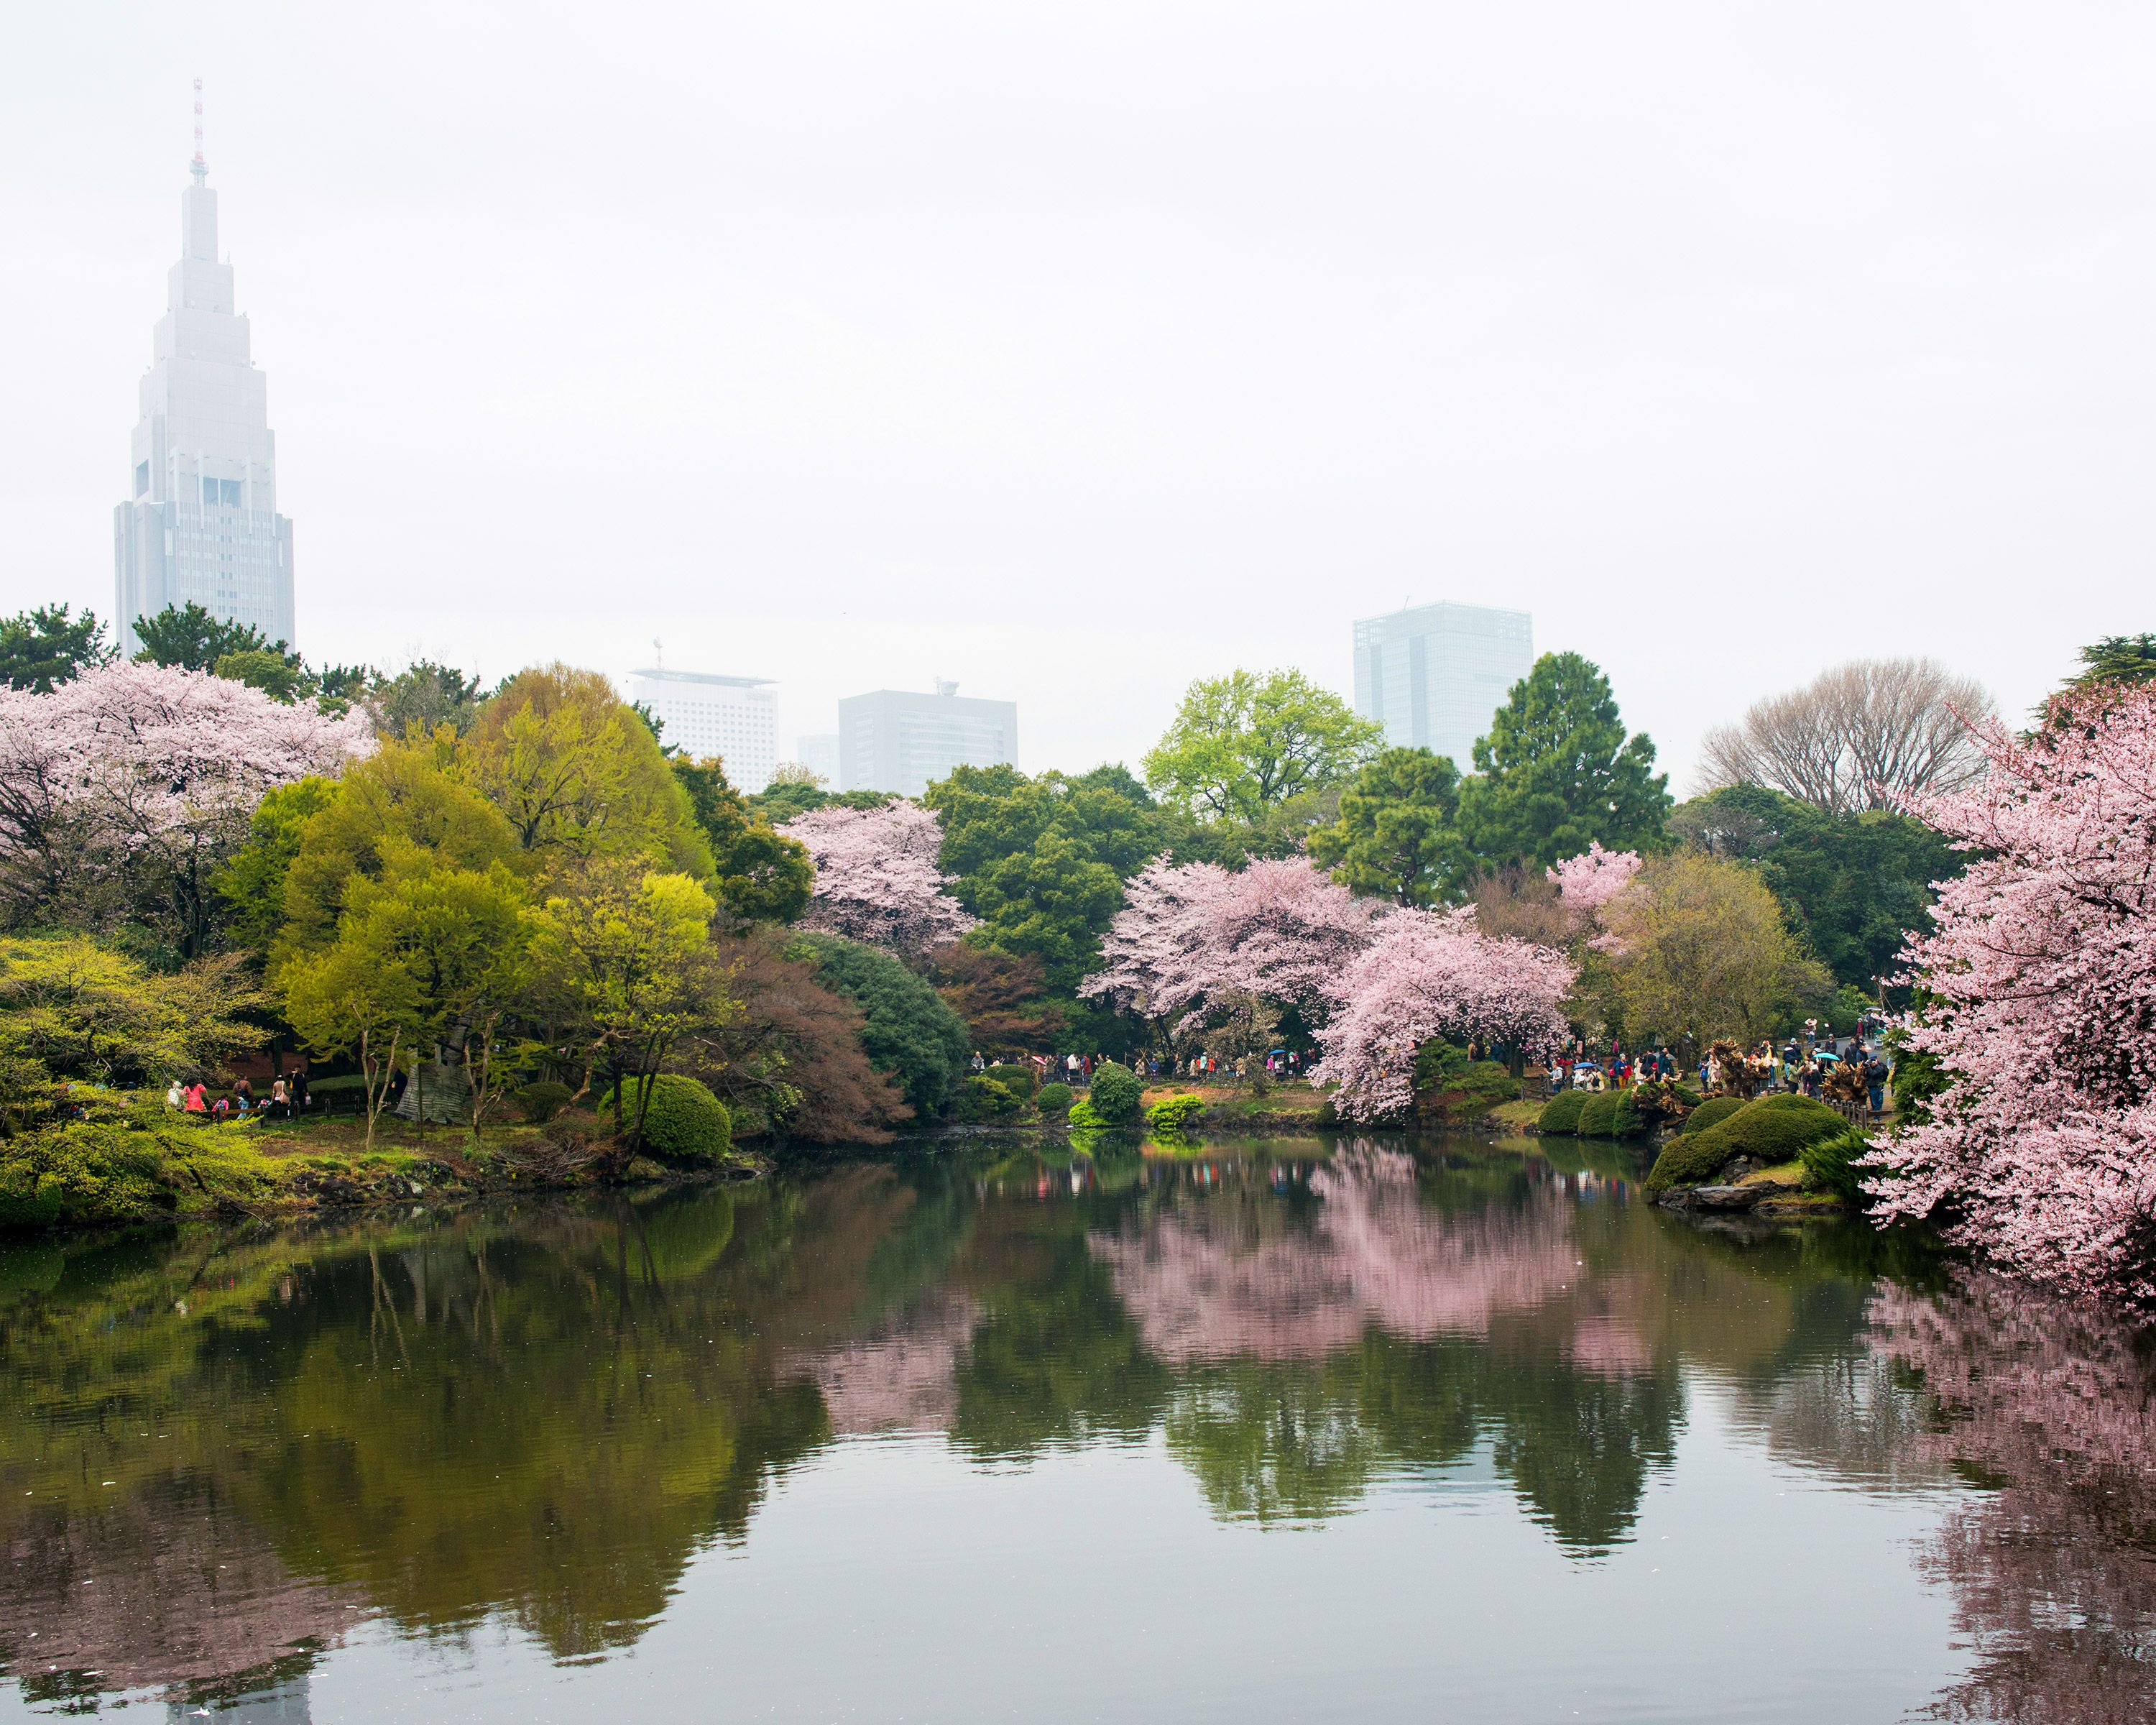 Embrace Spring With Pictures Of Japan S Cherry Blossoms Japan Travel Tokyo Holidays Cherry Blossom Japan